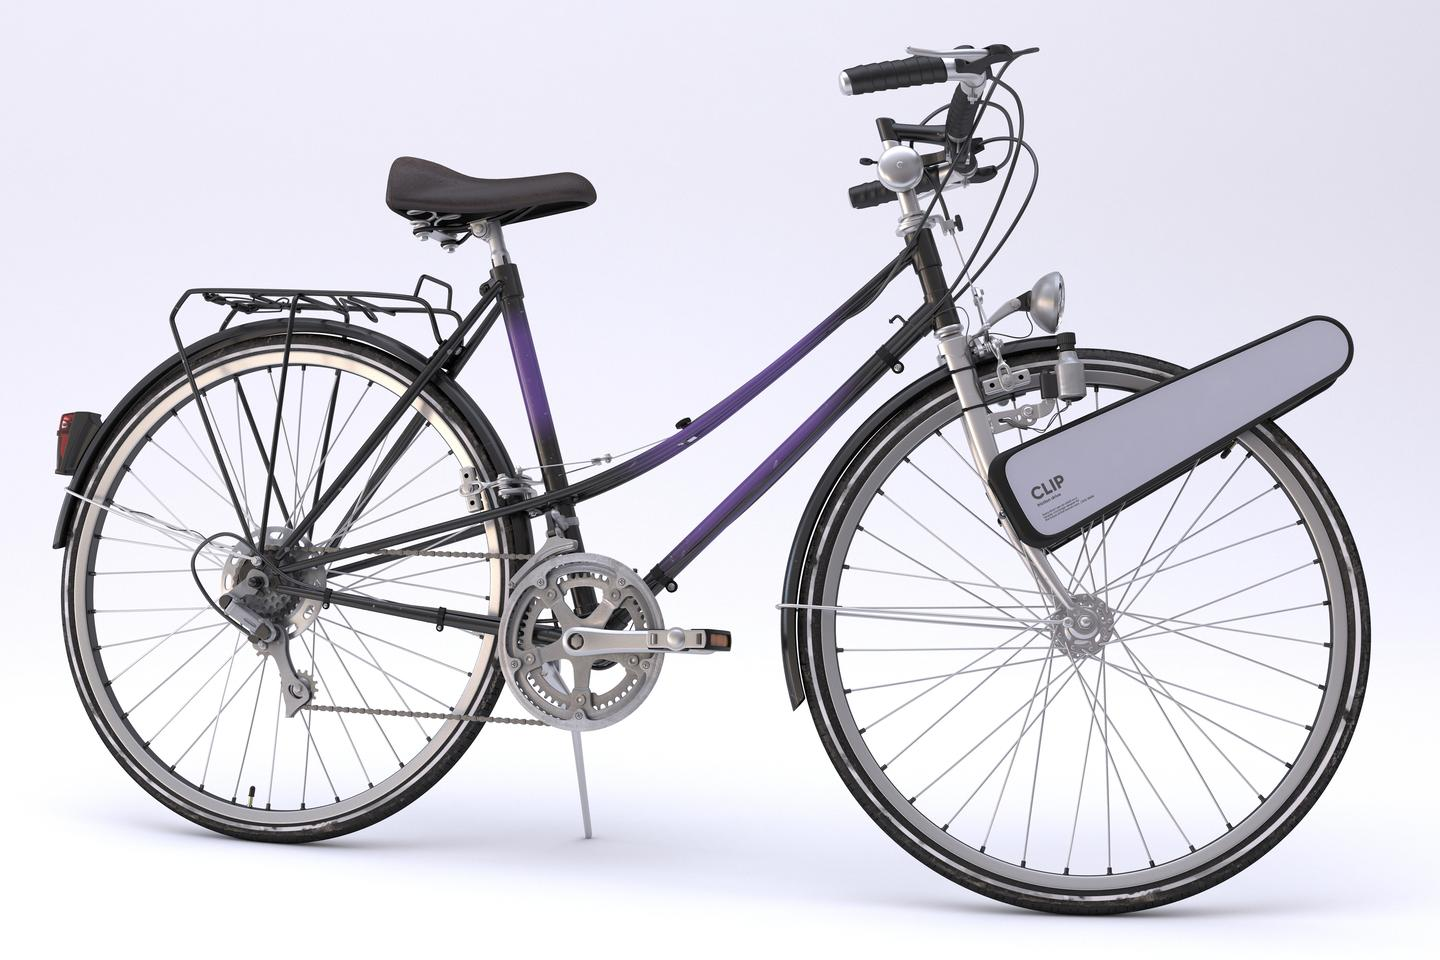 Clip is compatible with 26 to 28-inch front wheels